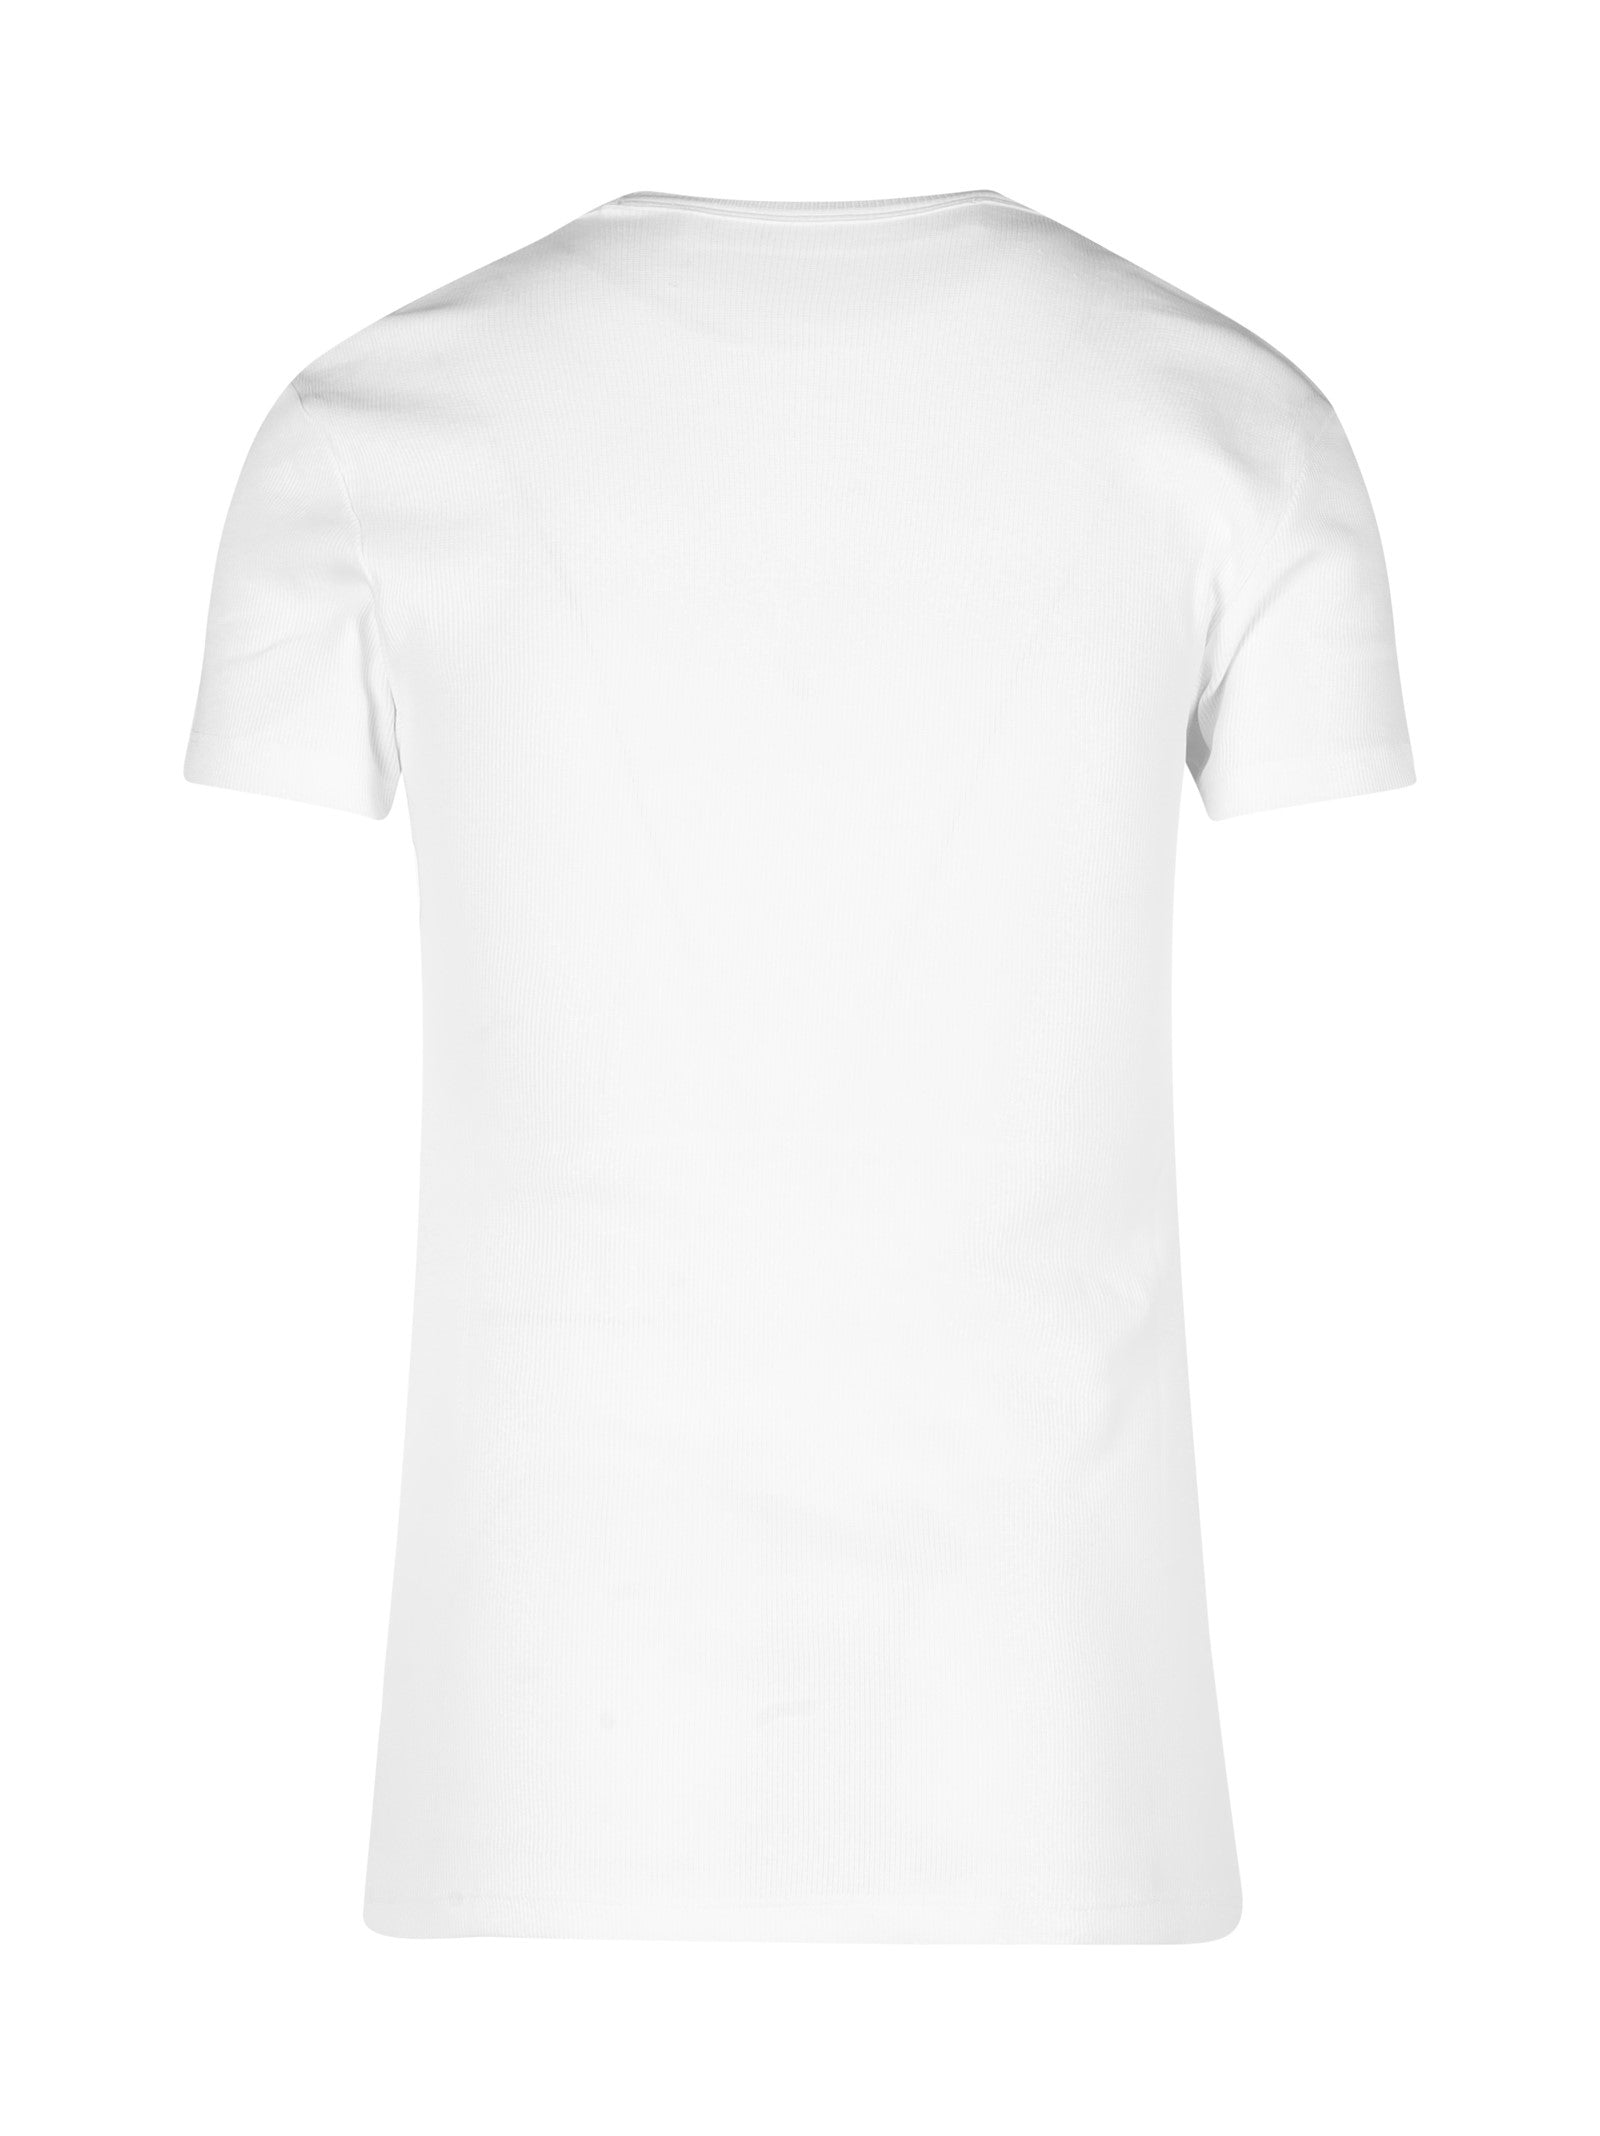 logo-print fitted T-shirt